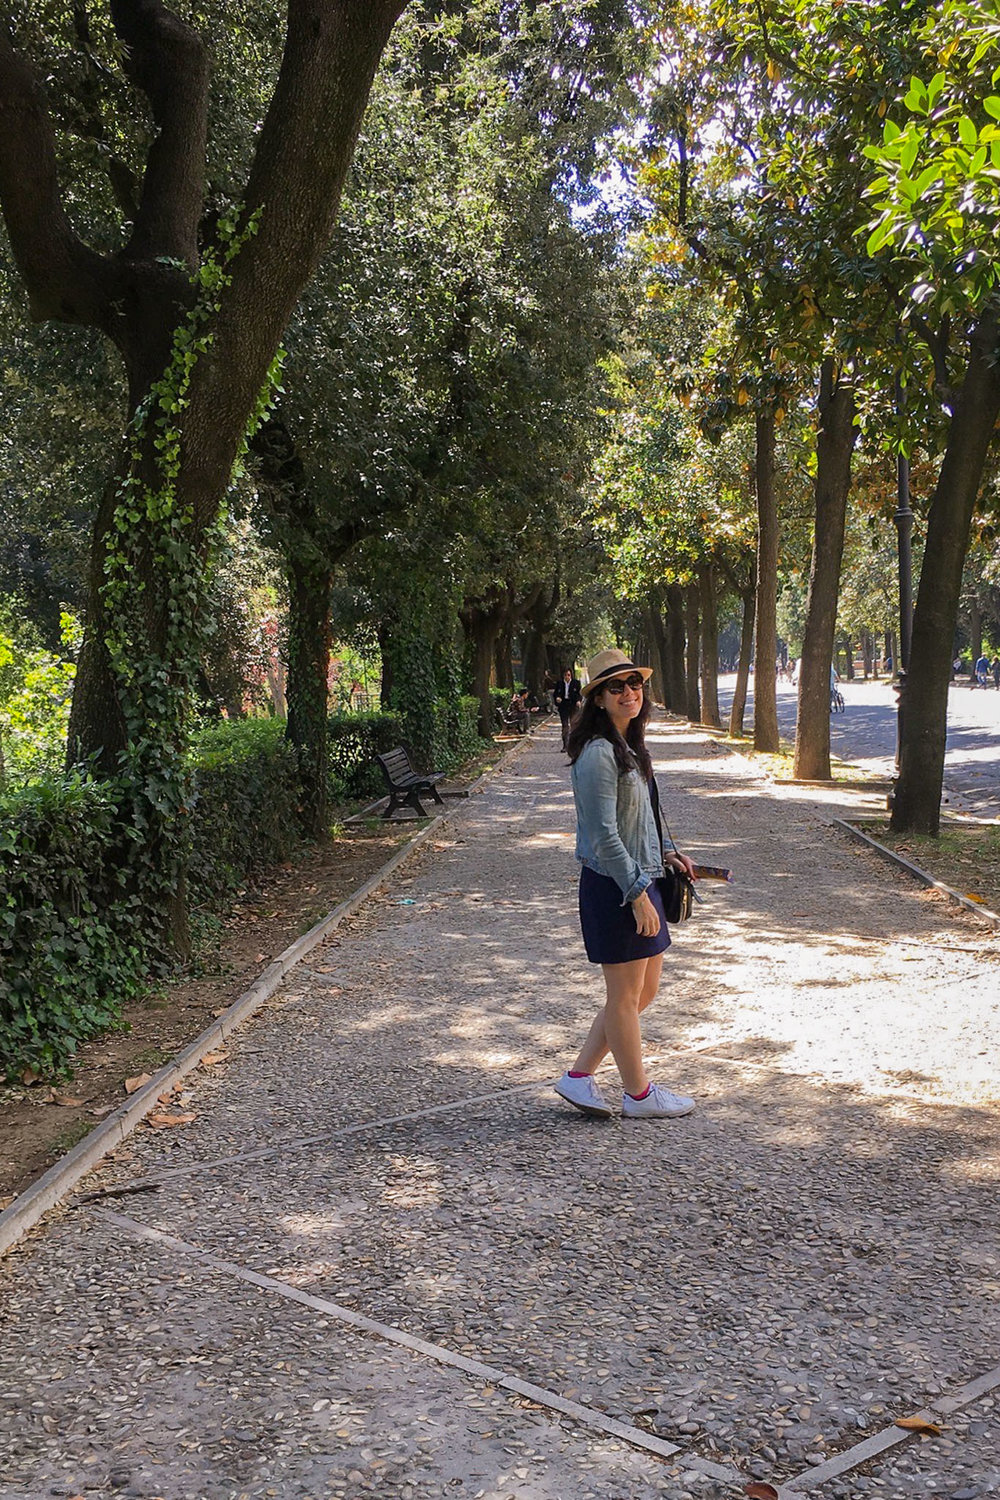 Walking through Villa Borghese